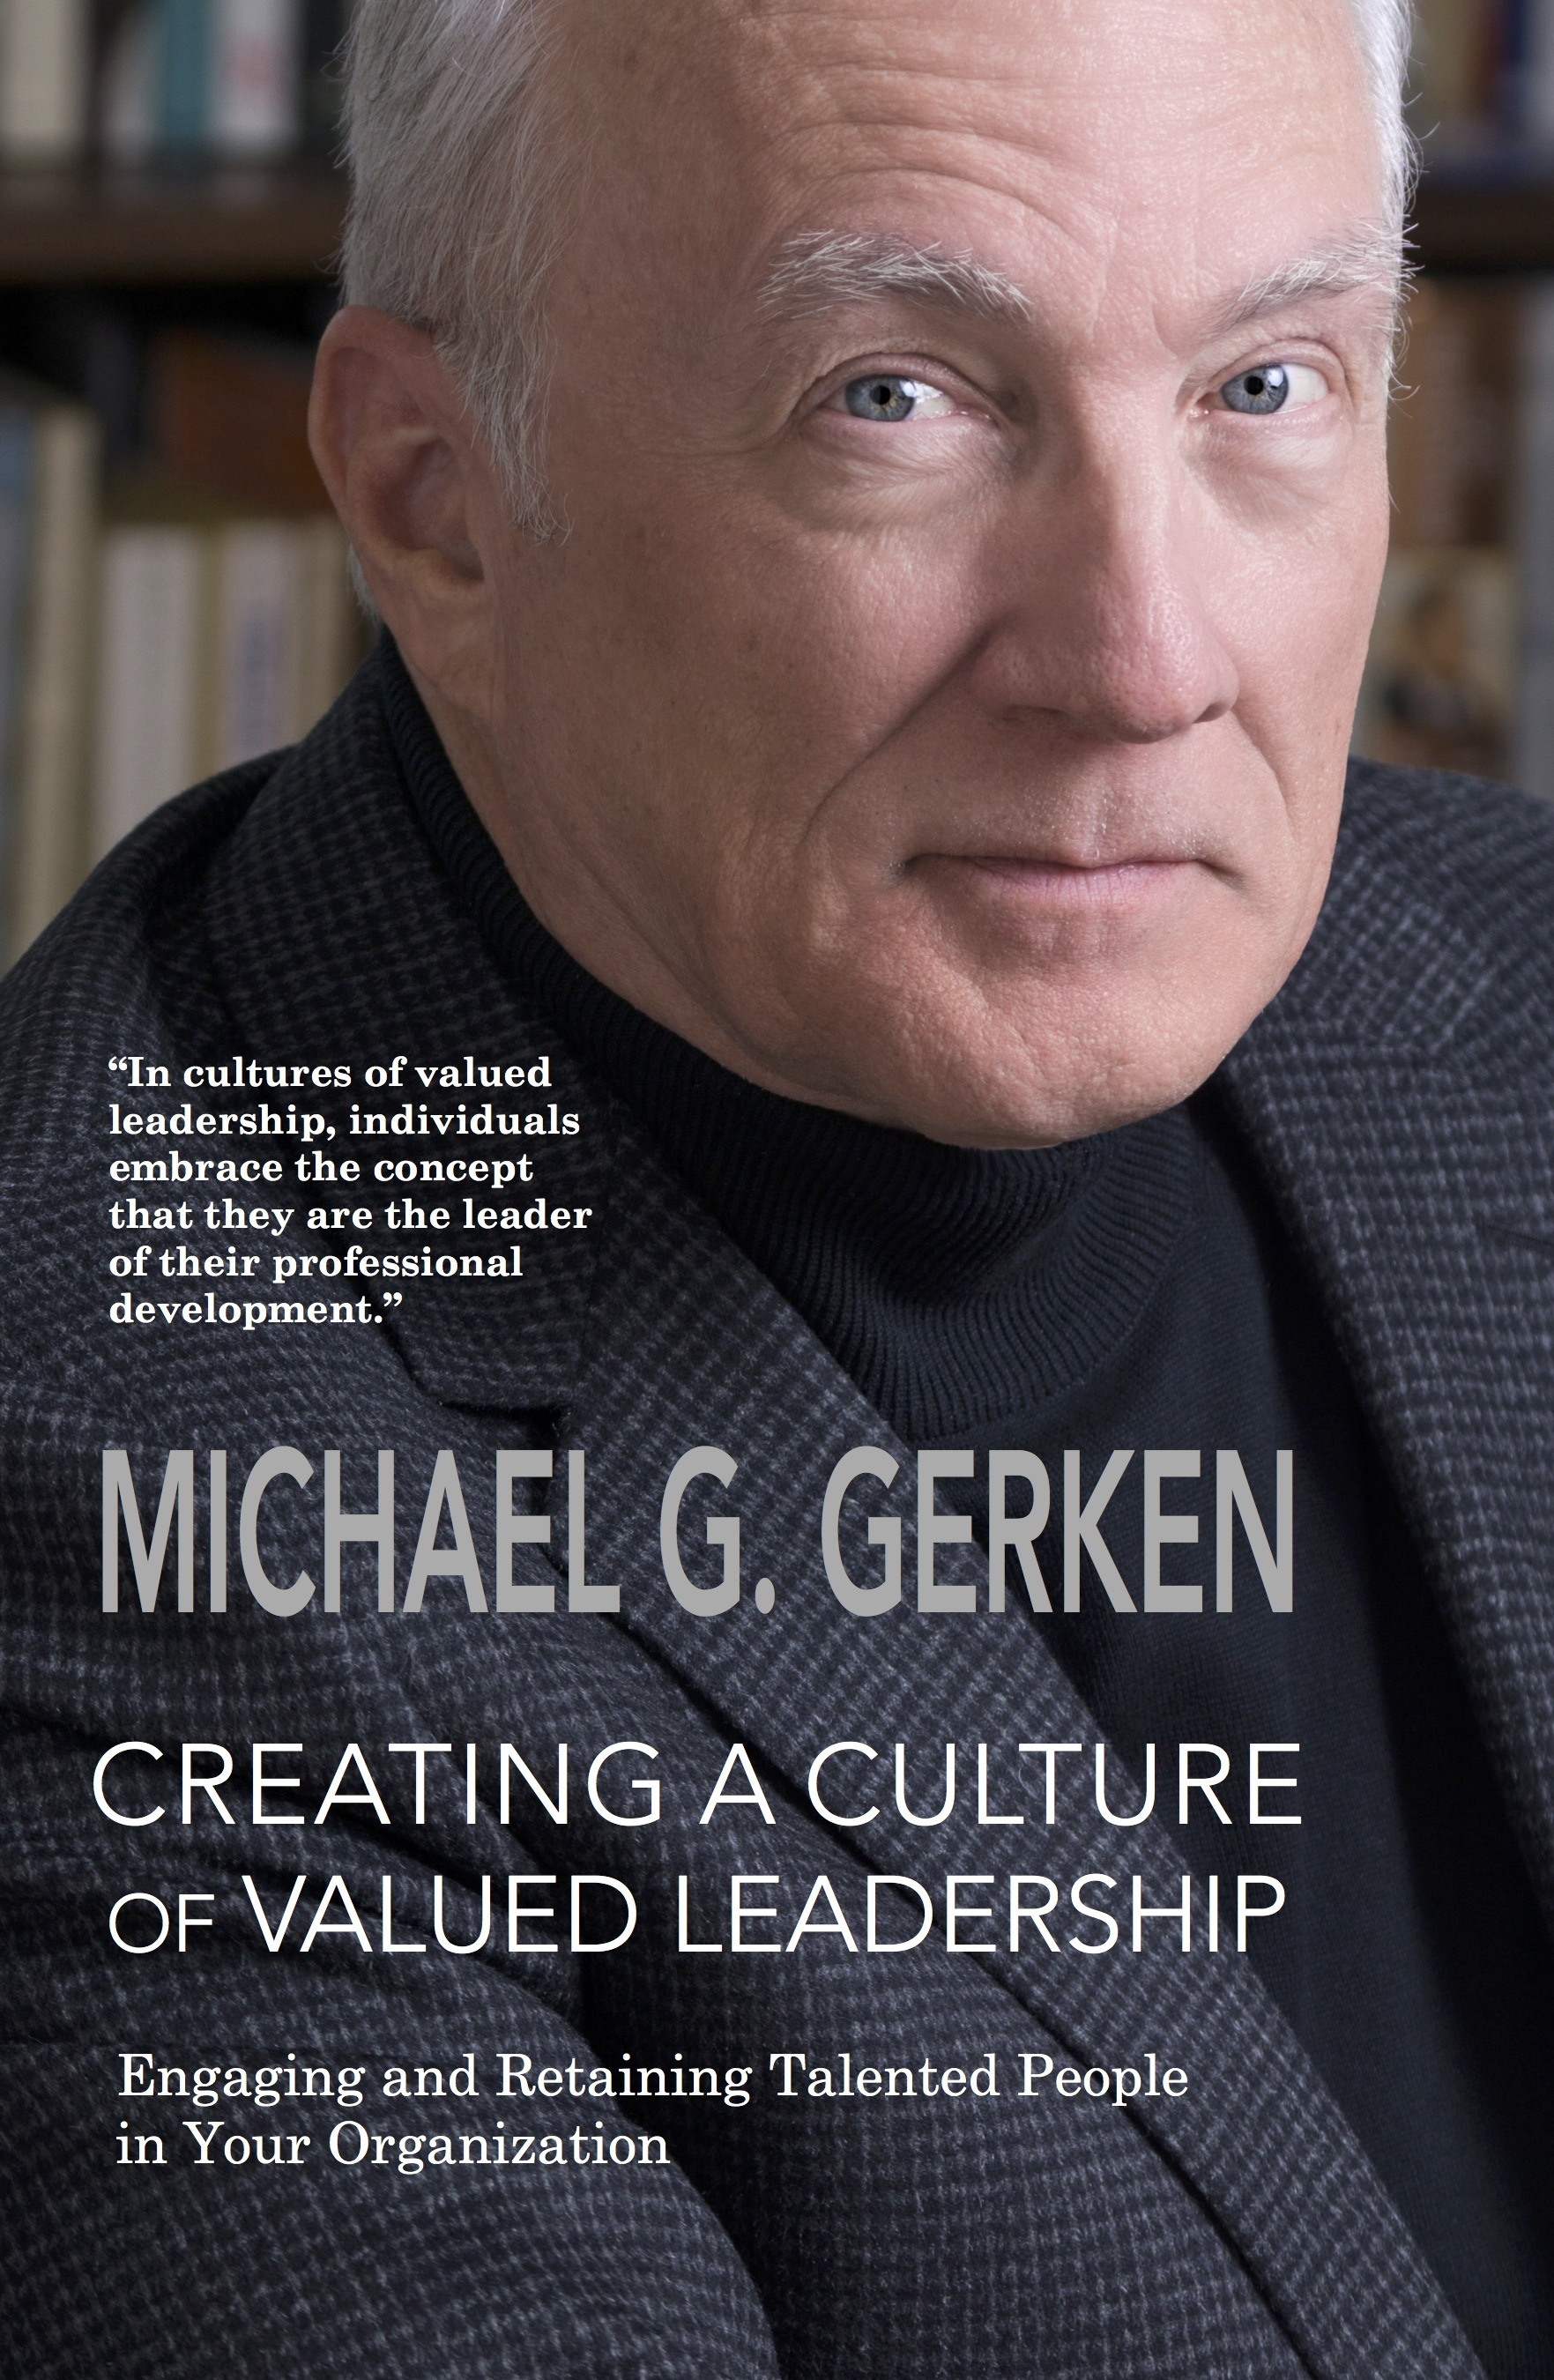 - This book is about you and the organizations where you contribute your time and talent. It explores a simple, impactful leadership concept along with specific tactics you can use to influence your organizations, whether for-profit or not-for- profit, small or large, to become cultures of valued leadership.More about the bookBuy the book on Amazon